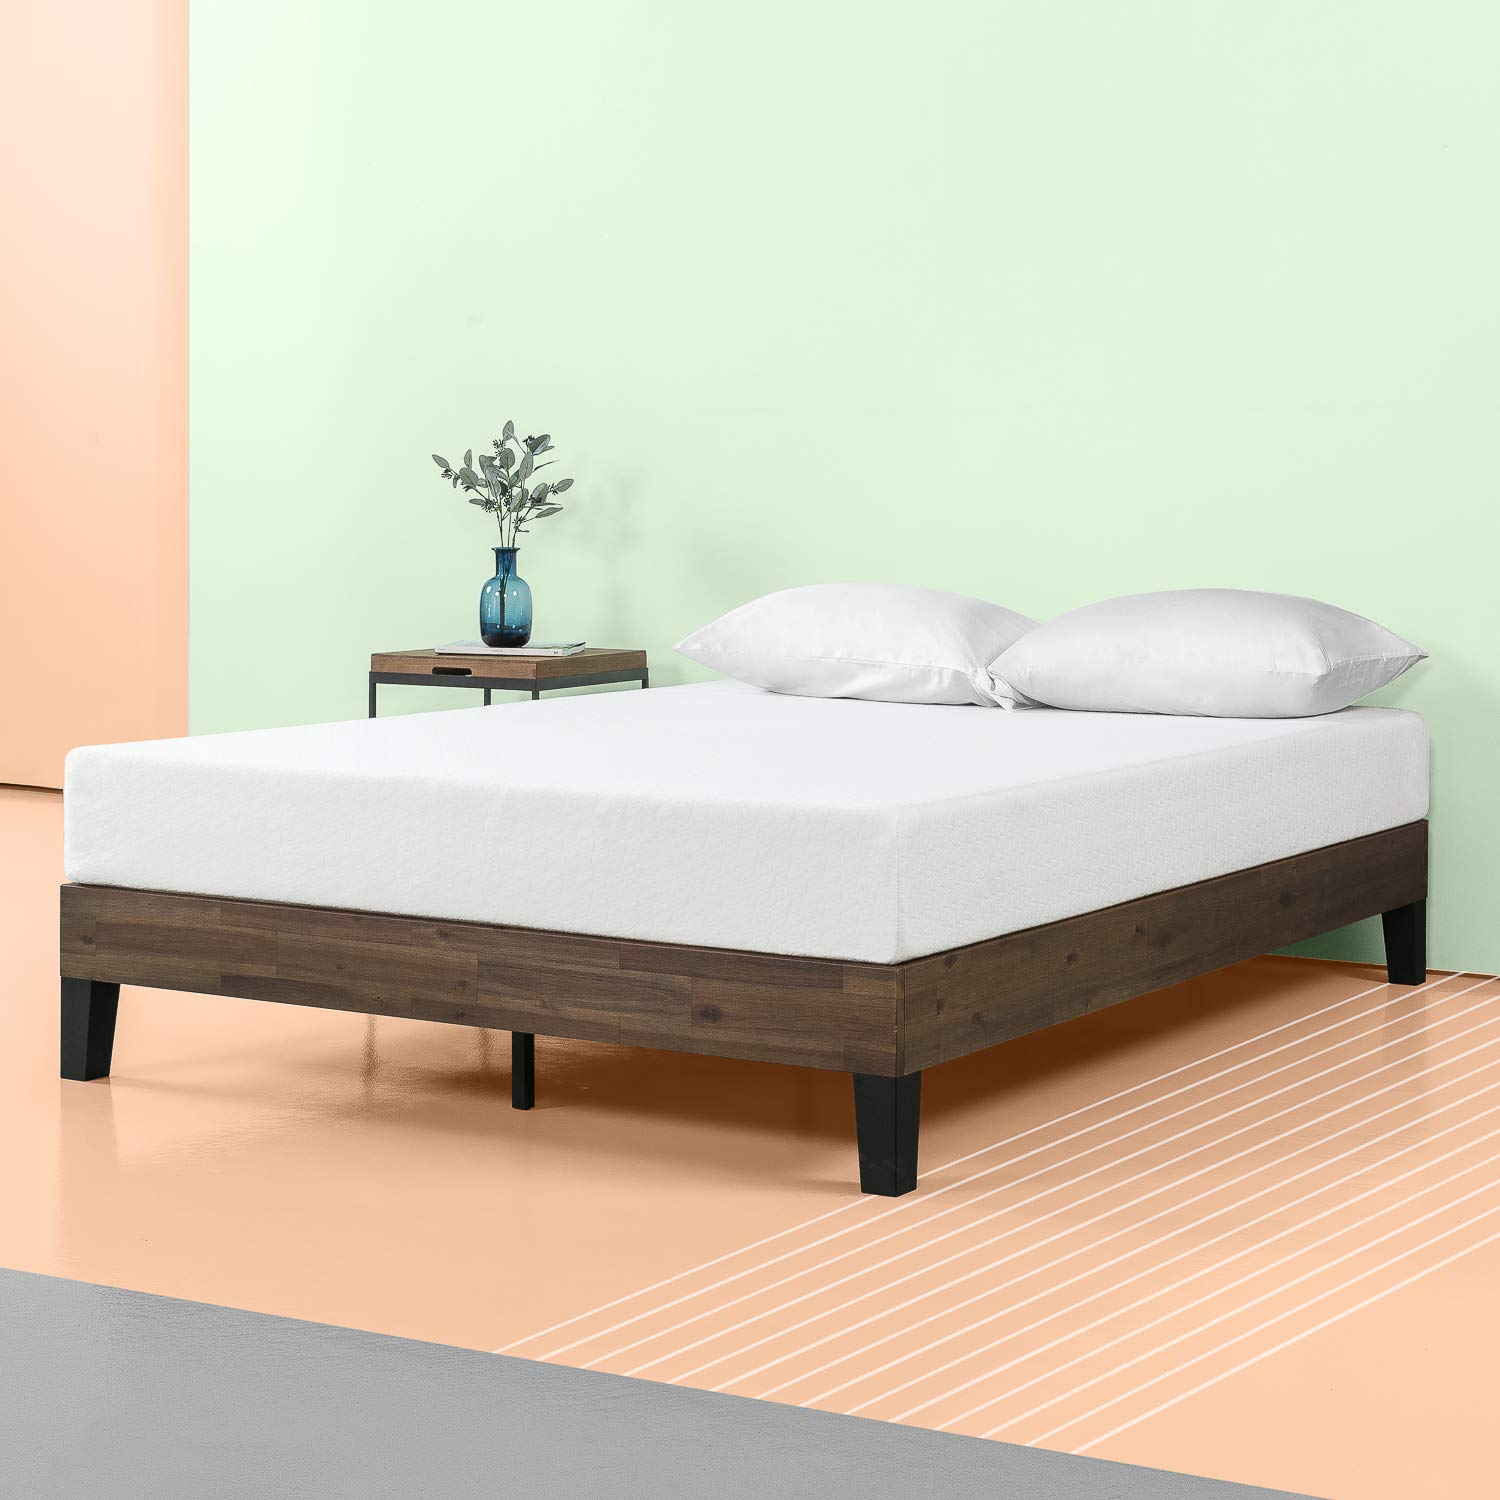 993b744e29 Amazon.com: Zinus 12 Inch Acacia Wood Platform Bed, No Boxspring Needed,  Wood slat support, Queen: Kitchen & Dining